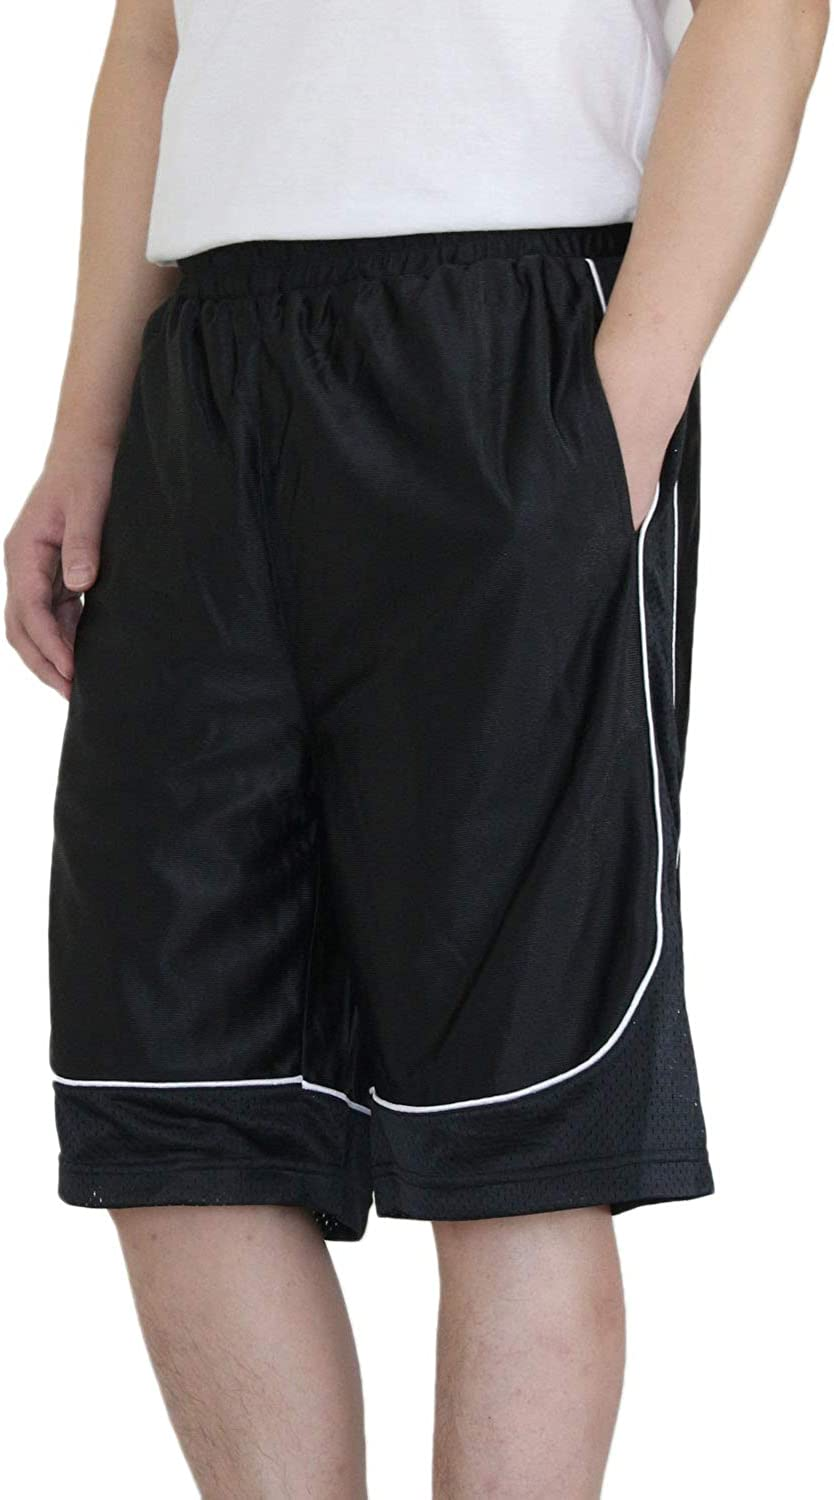 AIRNINE Men's Training Basketball Outlet ☆ Free Shipping Shorts S Pockets Special price for a limited time to with 5XL